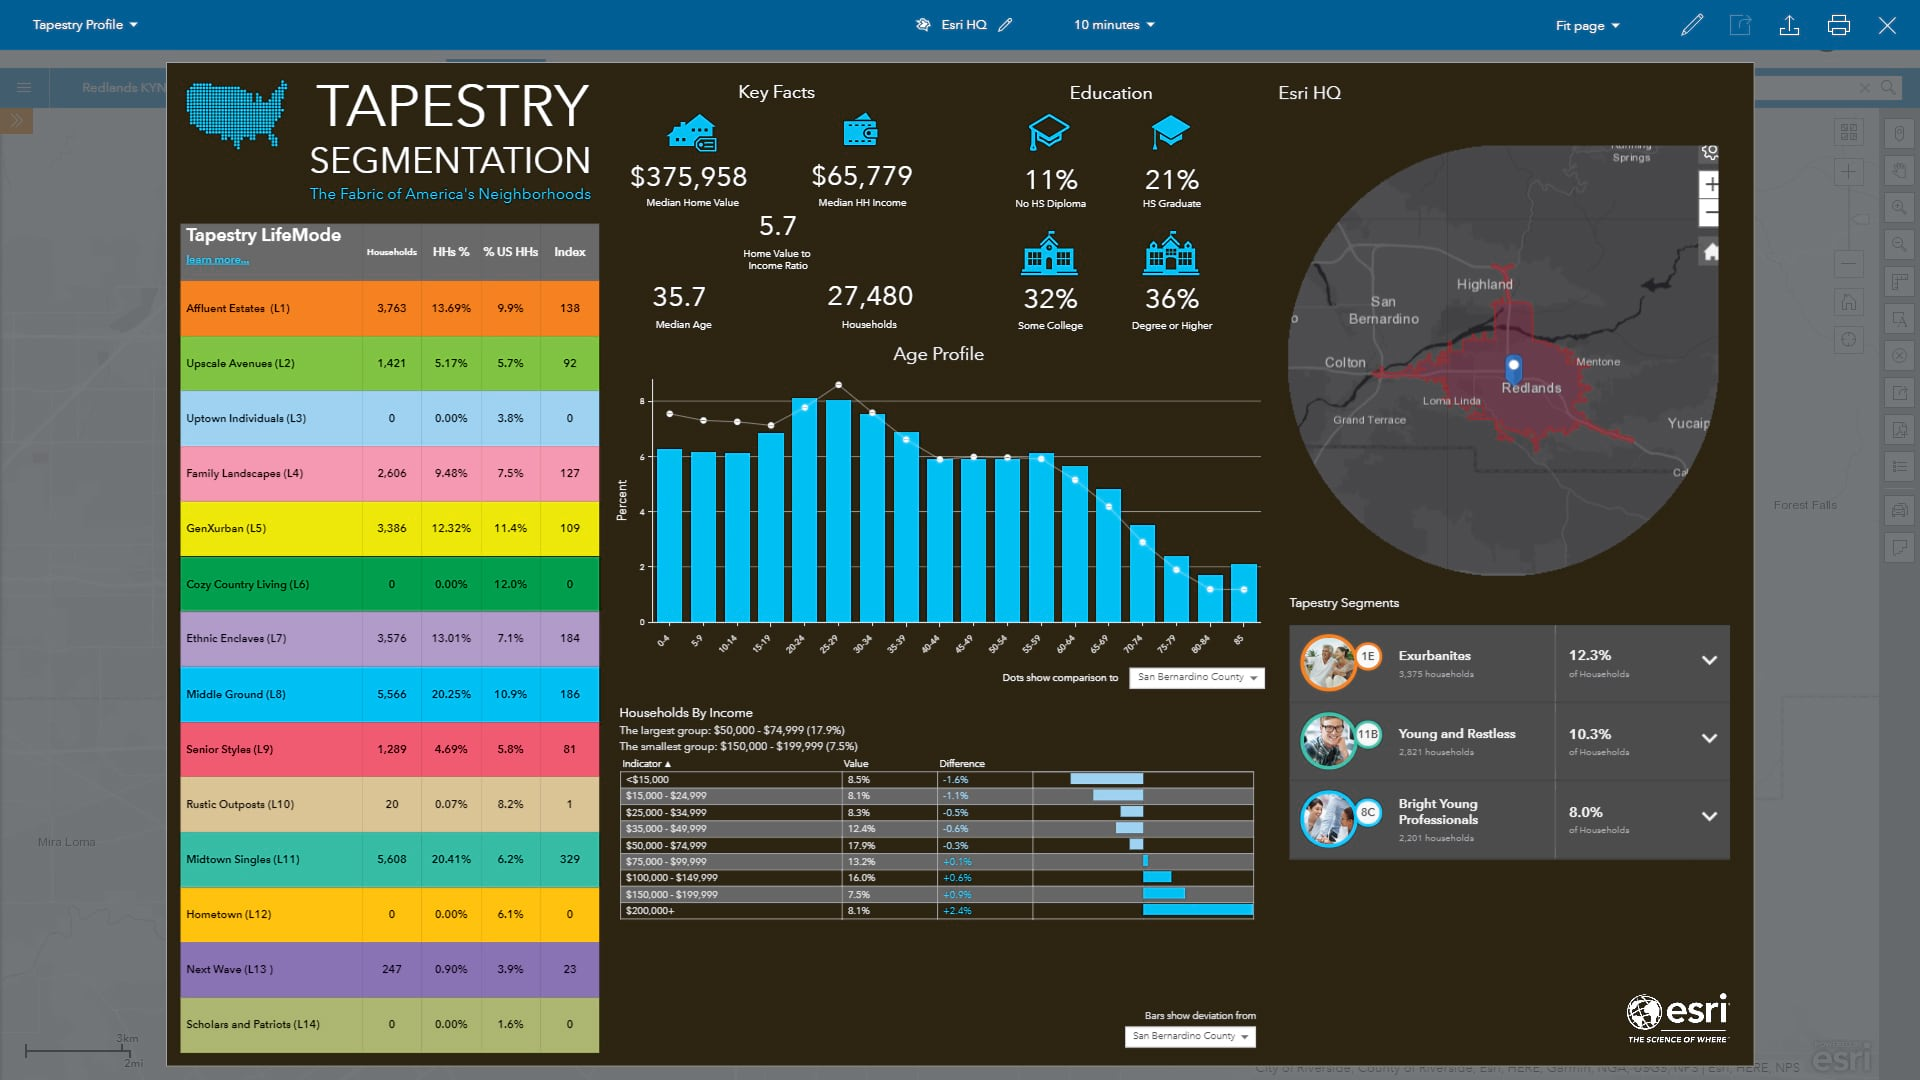 Esri's Template Tapestry Profile Infographic